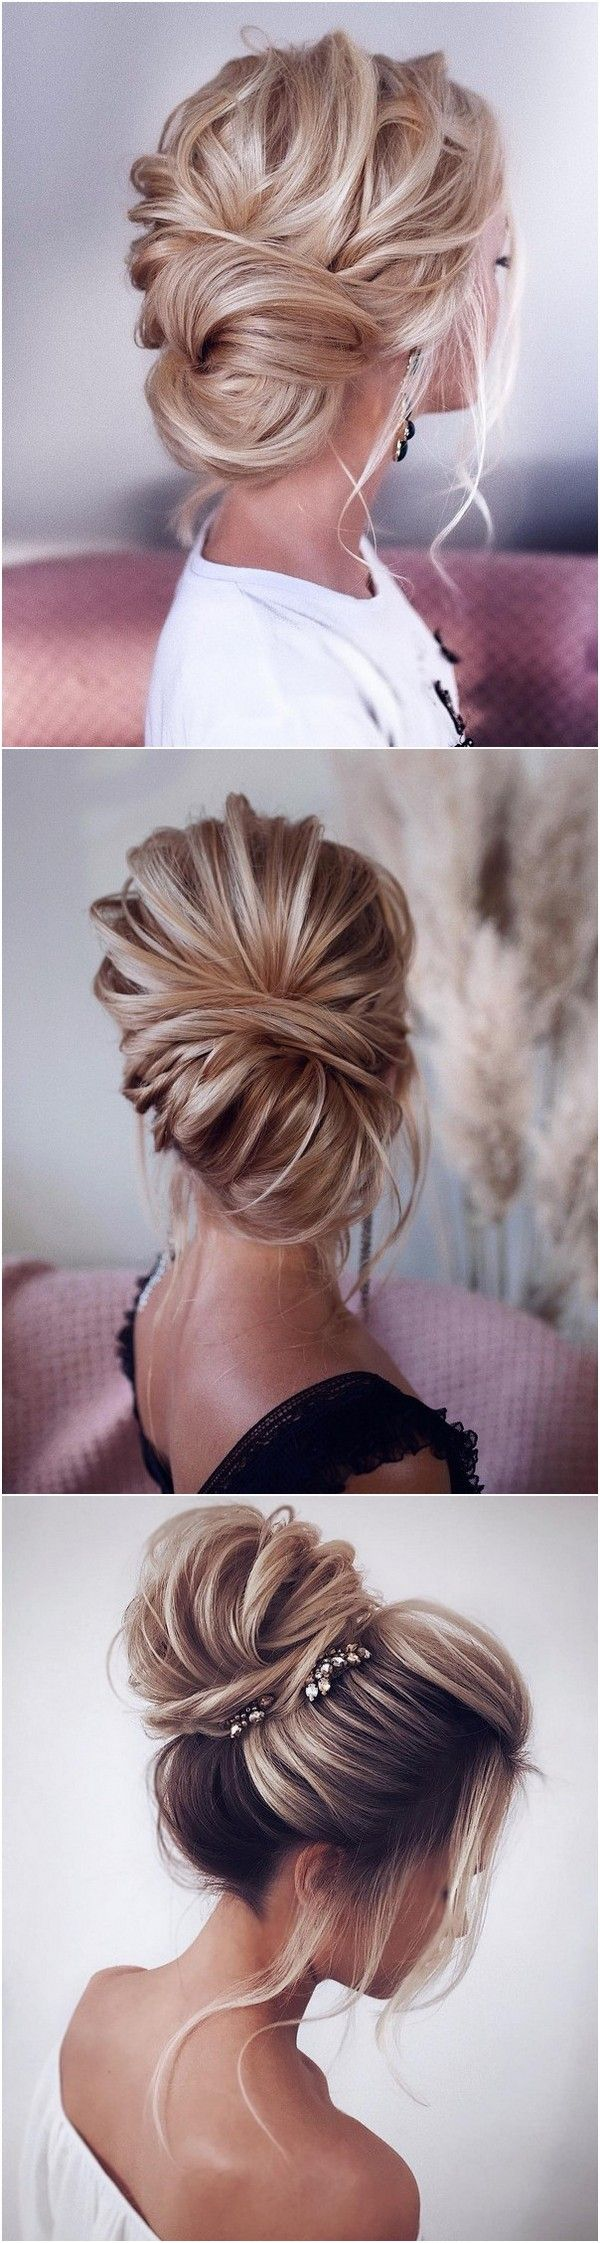 26 gorgeous updo wedding hairstyles from tonyastylist - page